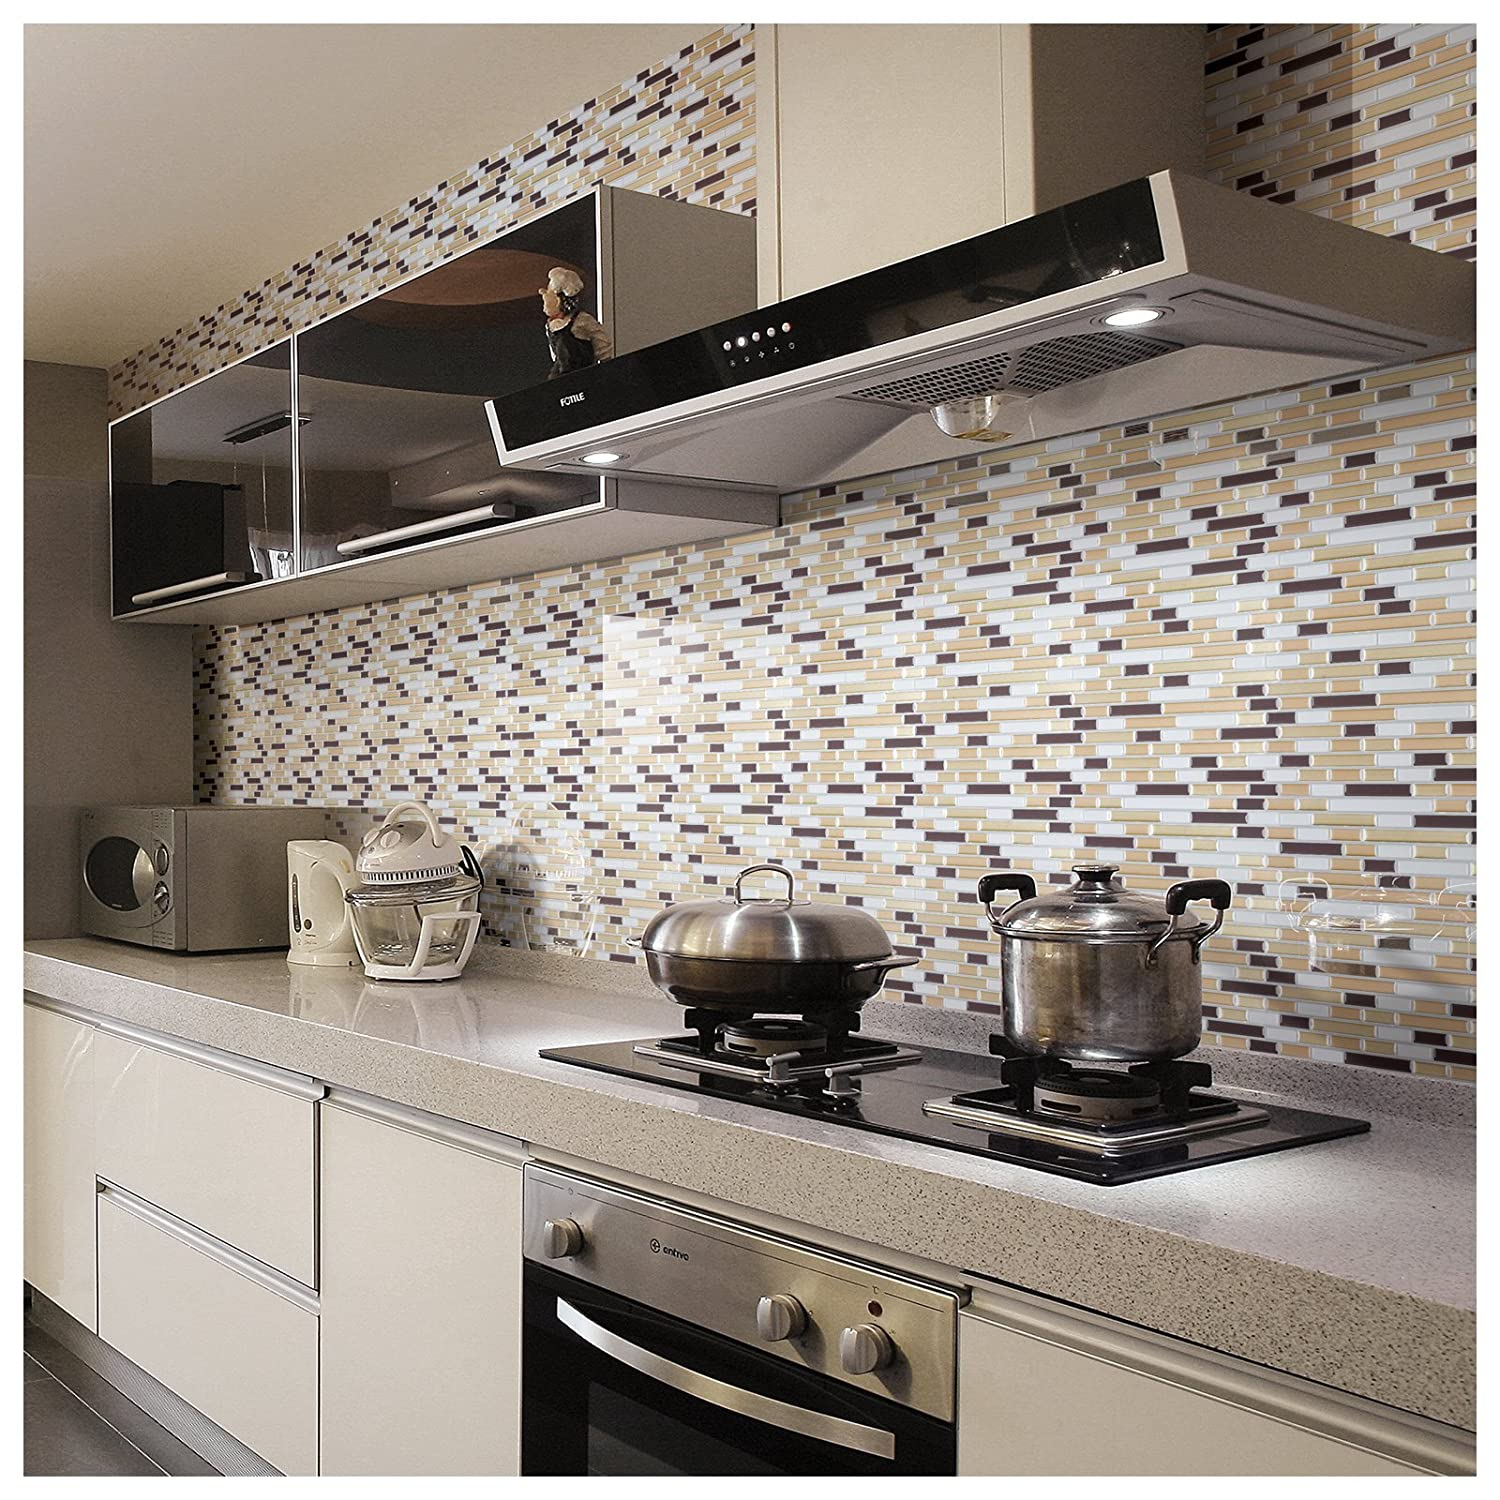 Art3d Peel N Stick Backsplash Tile Sticker Vinyl Wall Covering, 30cm X 30cm  Champagne Gold (2 Pack): Amazon.co.uk: Garden U0026 Outdoors